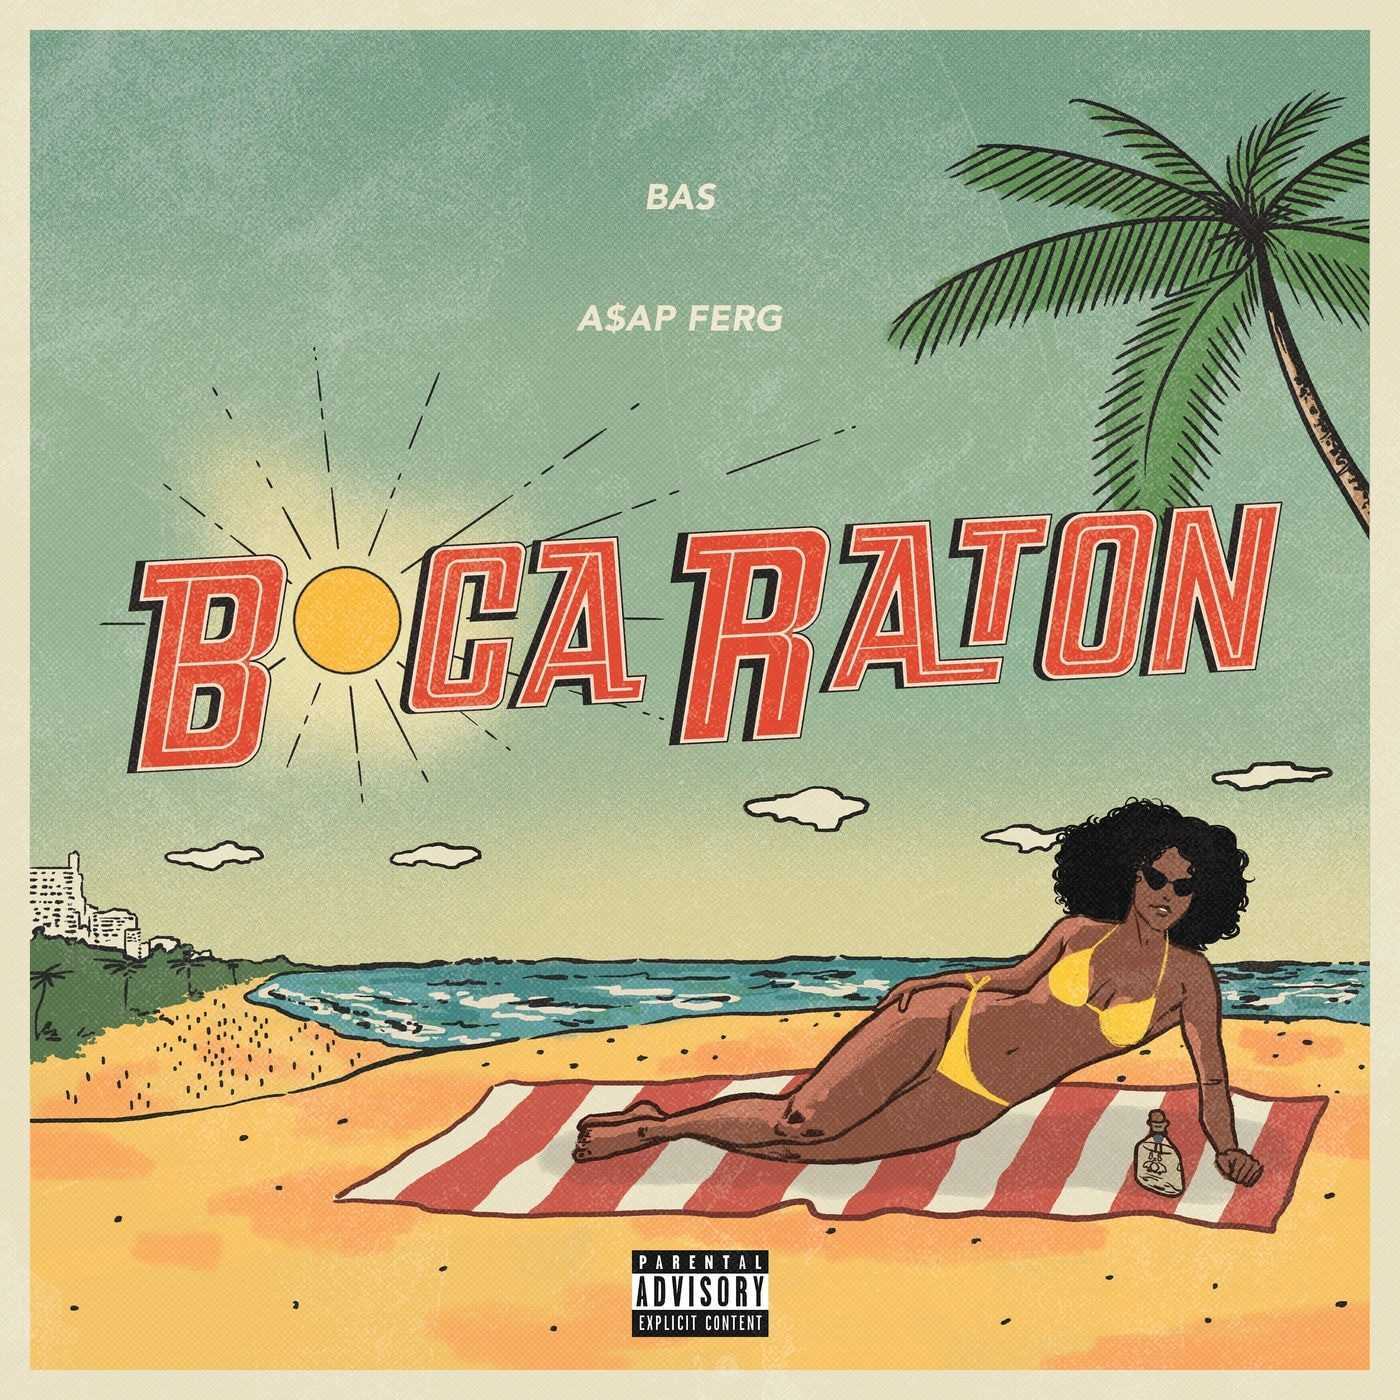 New Music: Bas | Boca Raton (feat. A$AP Ferg) [Audio]